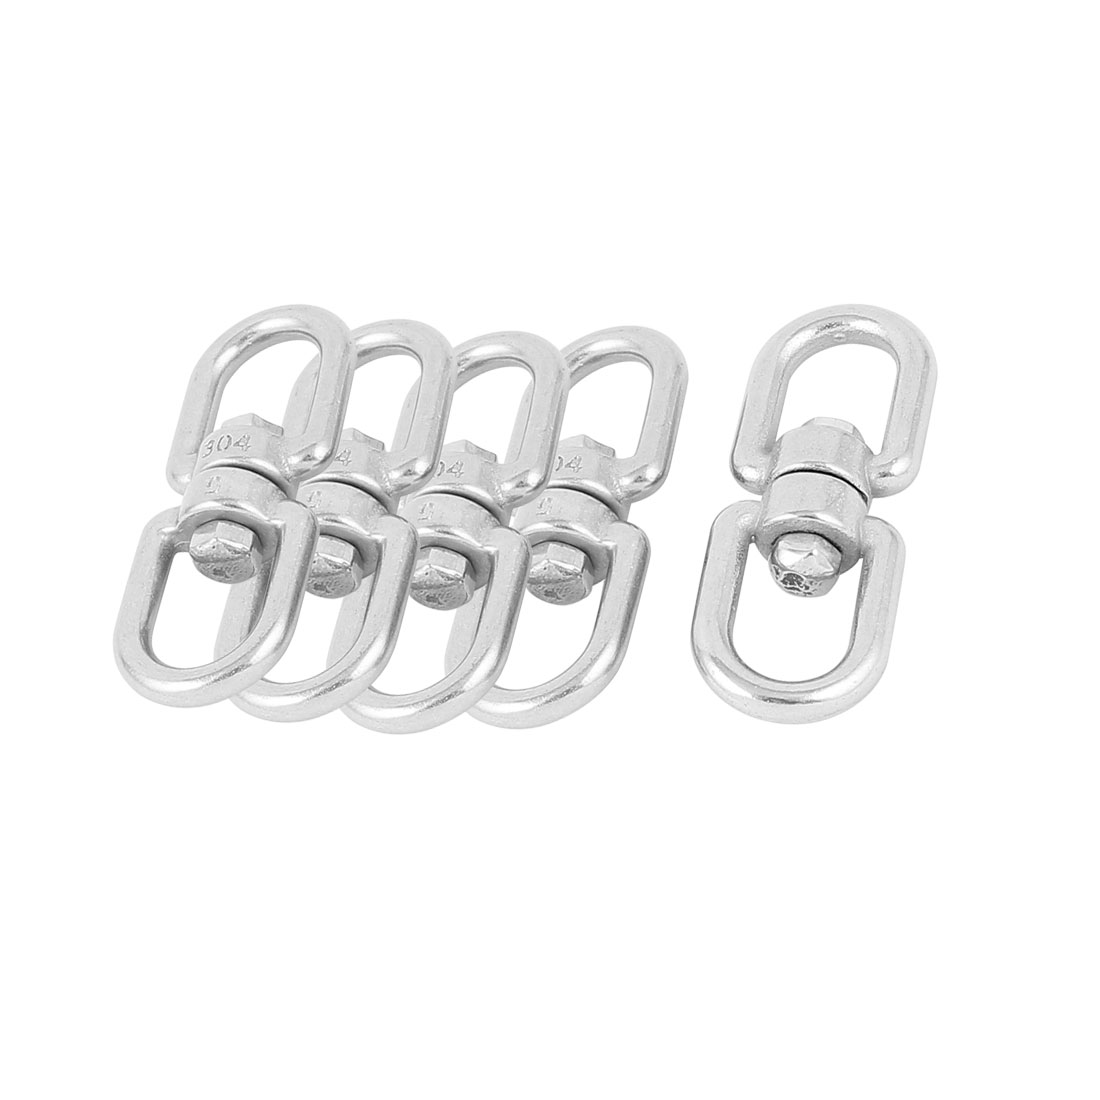 5 Pcs 5mm Thickness 304 Stainless Steel Double D Shape Eye Swivel Hook Shackle